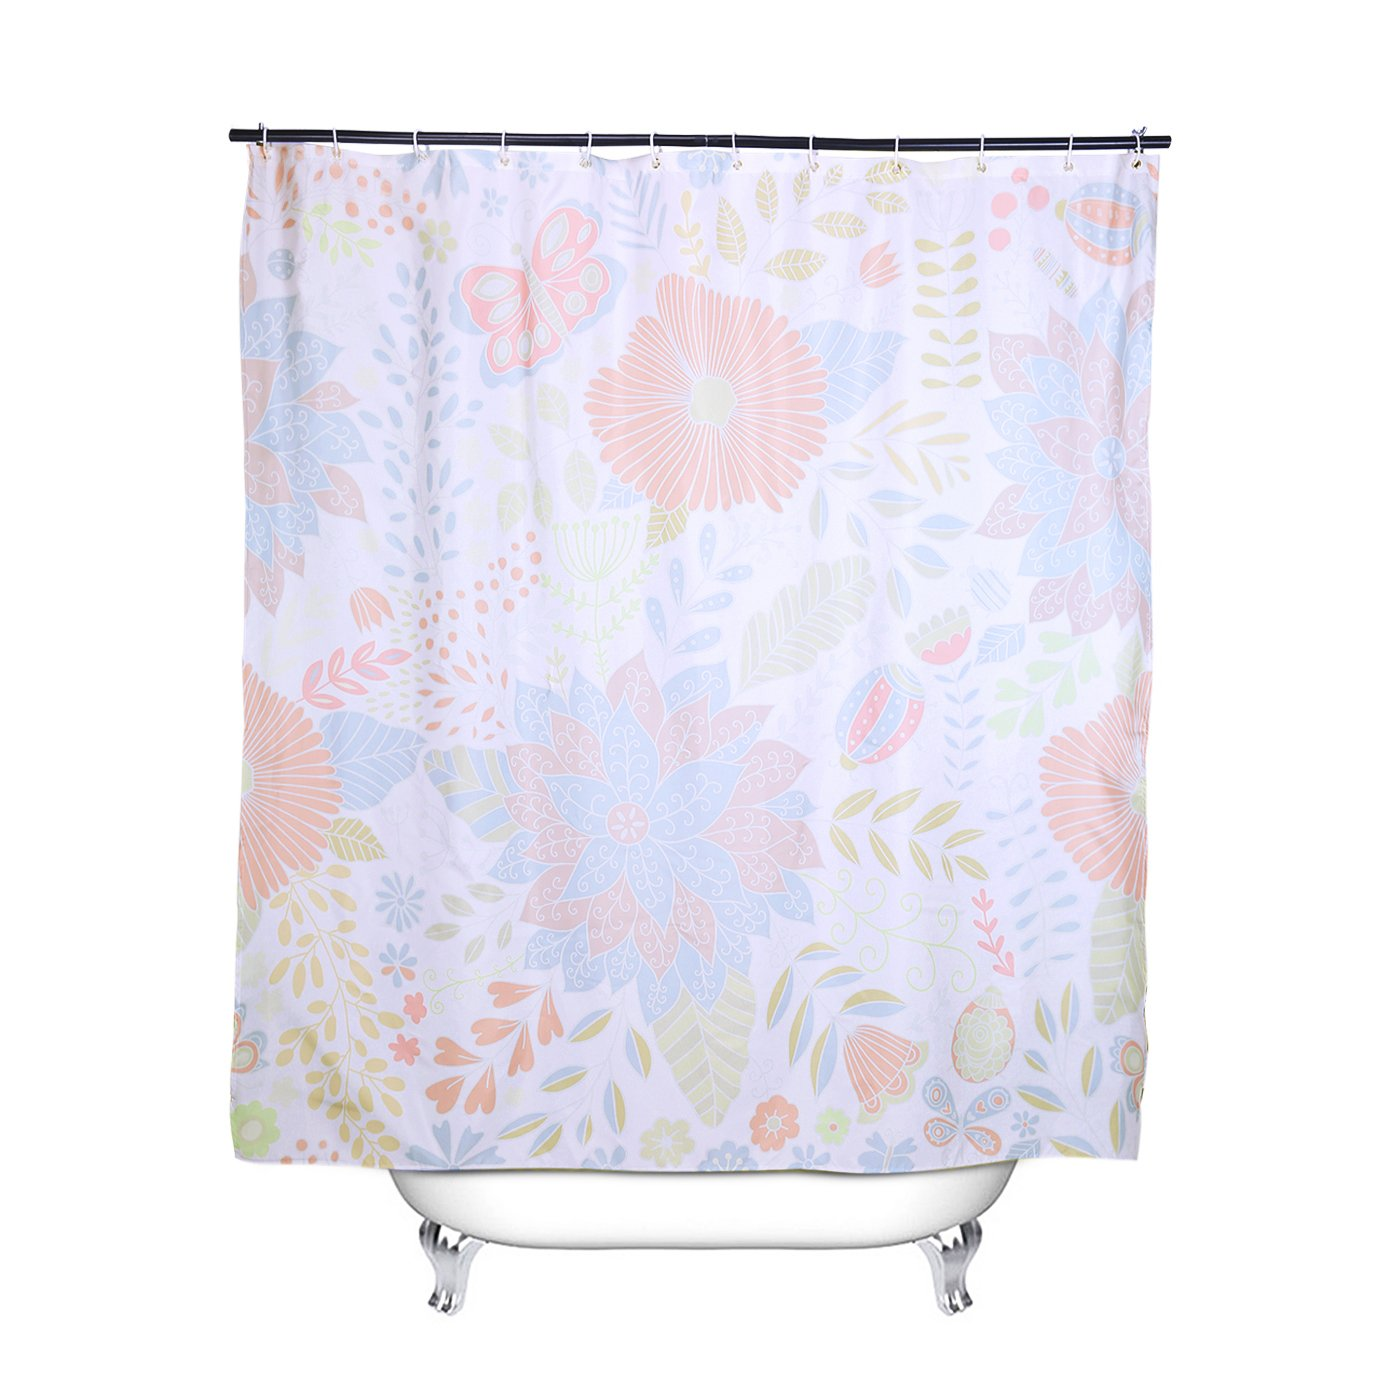 HDE Shower Curtain with Hooks Mildew Resistant Water-Repellent 72x72 Decorative Patterned Fabric Curtain with Heavy Duty Metal Grommets Simple Floral